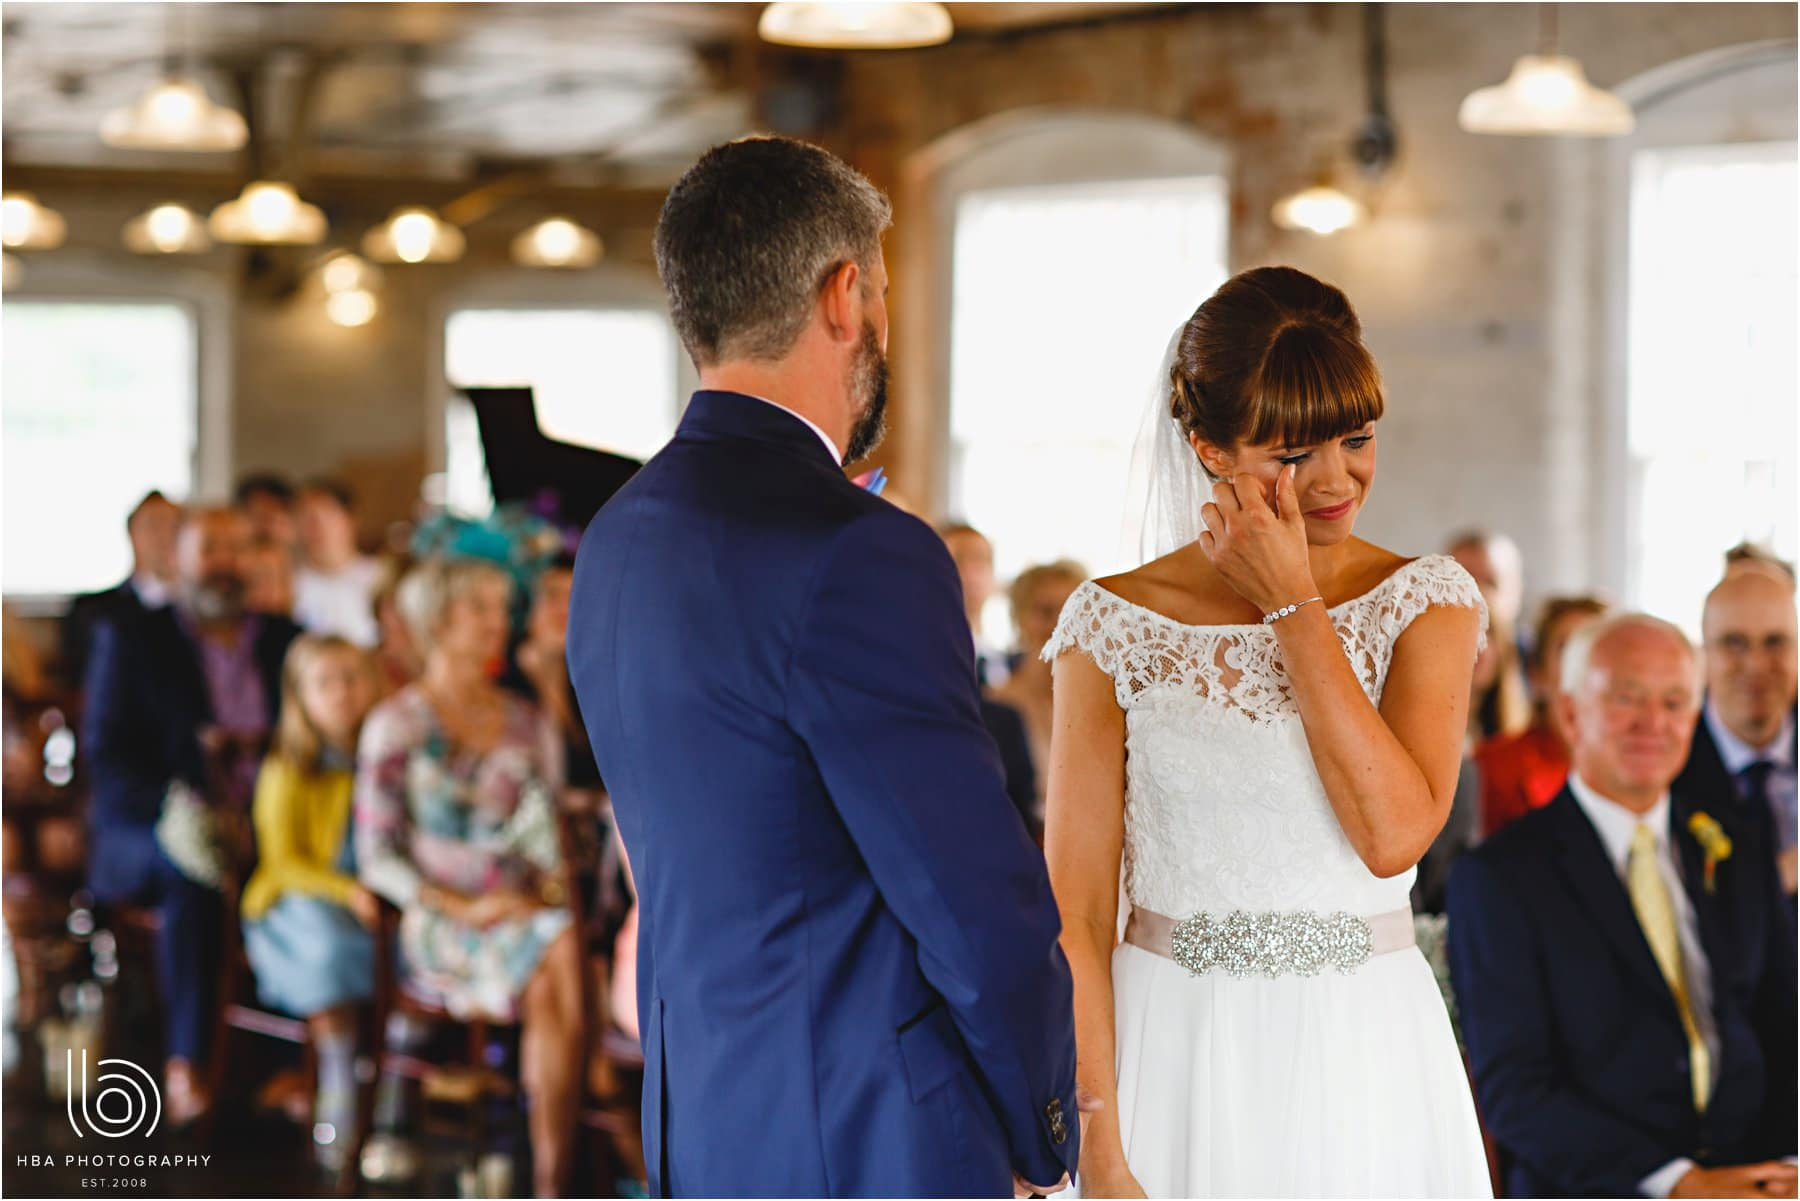 the bride's tears during the ceremony